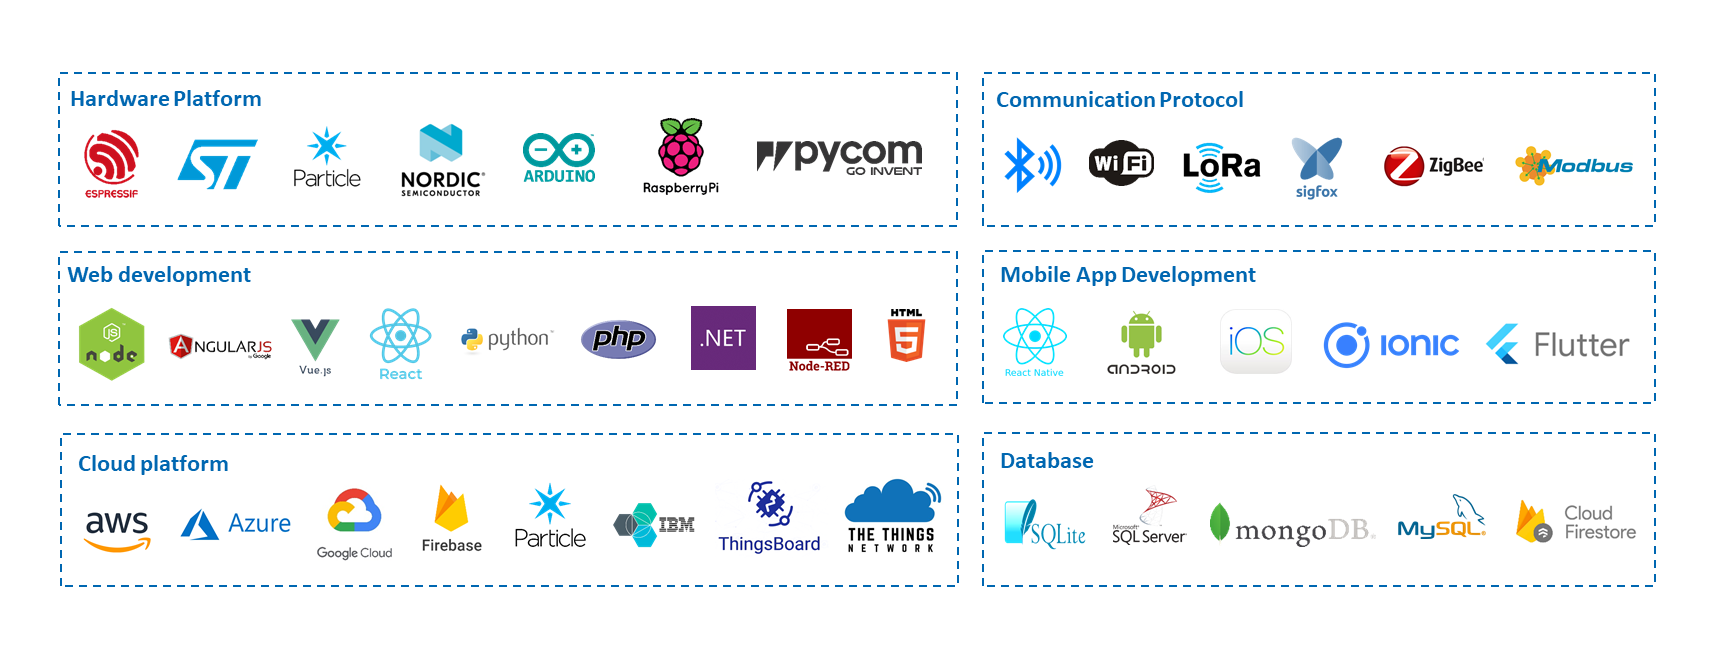 Technology Stack for IoT